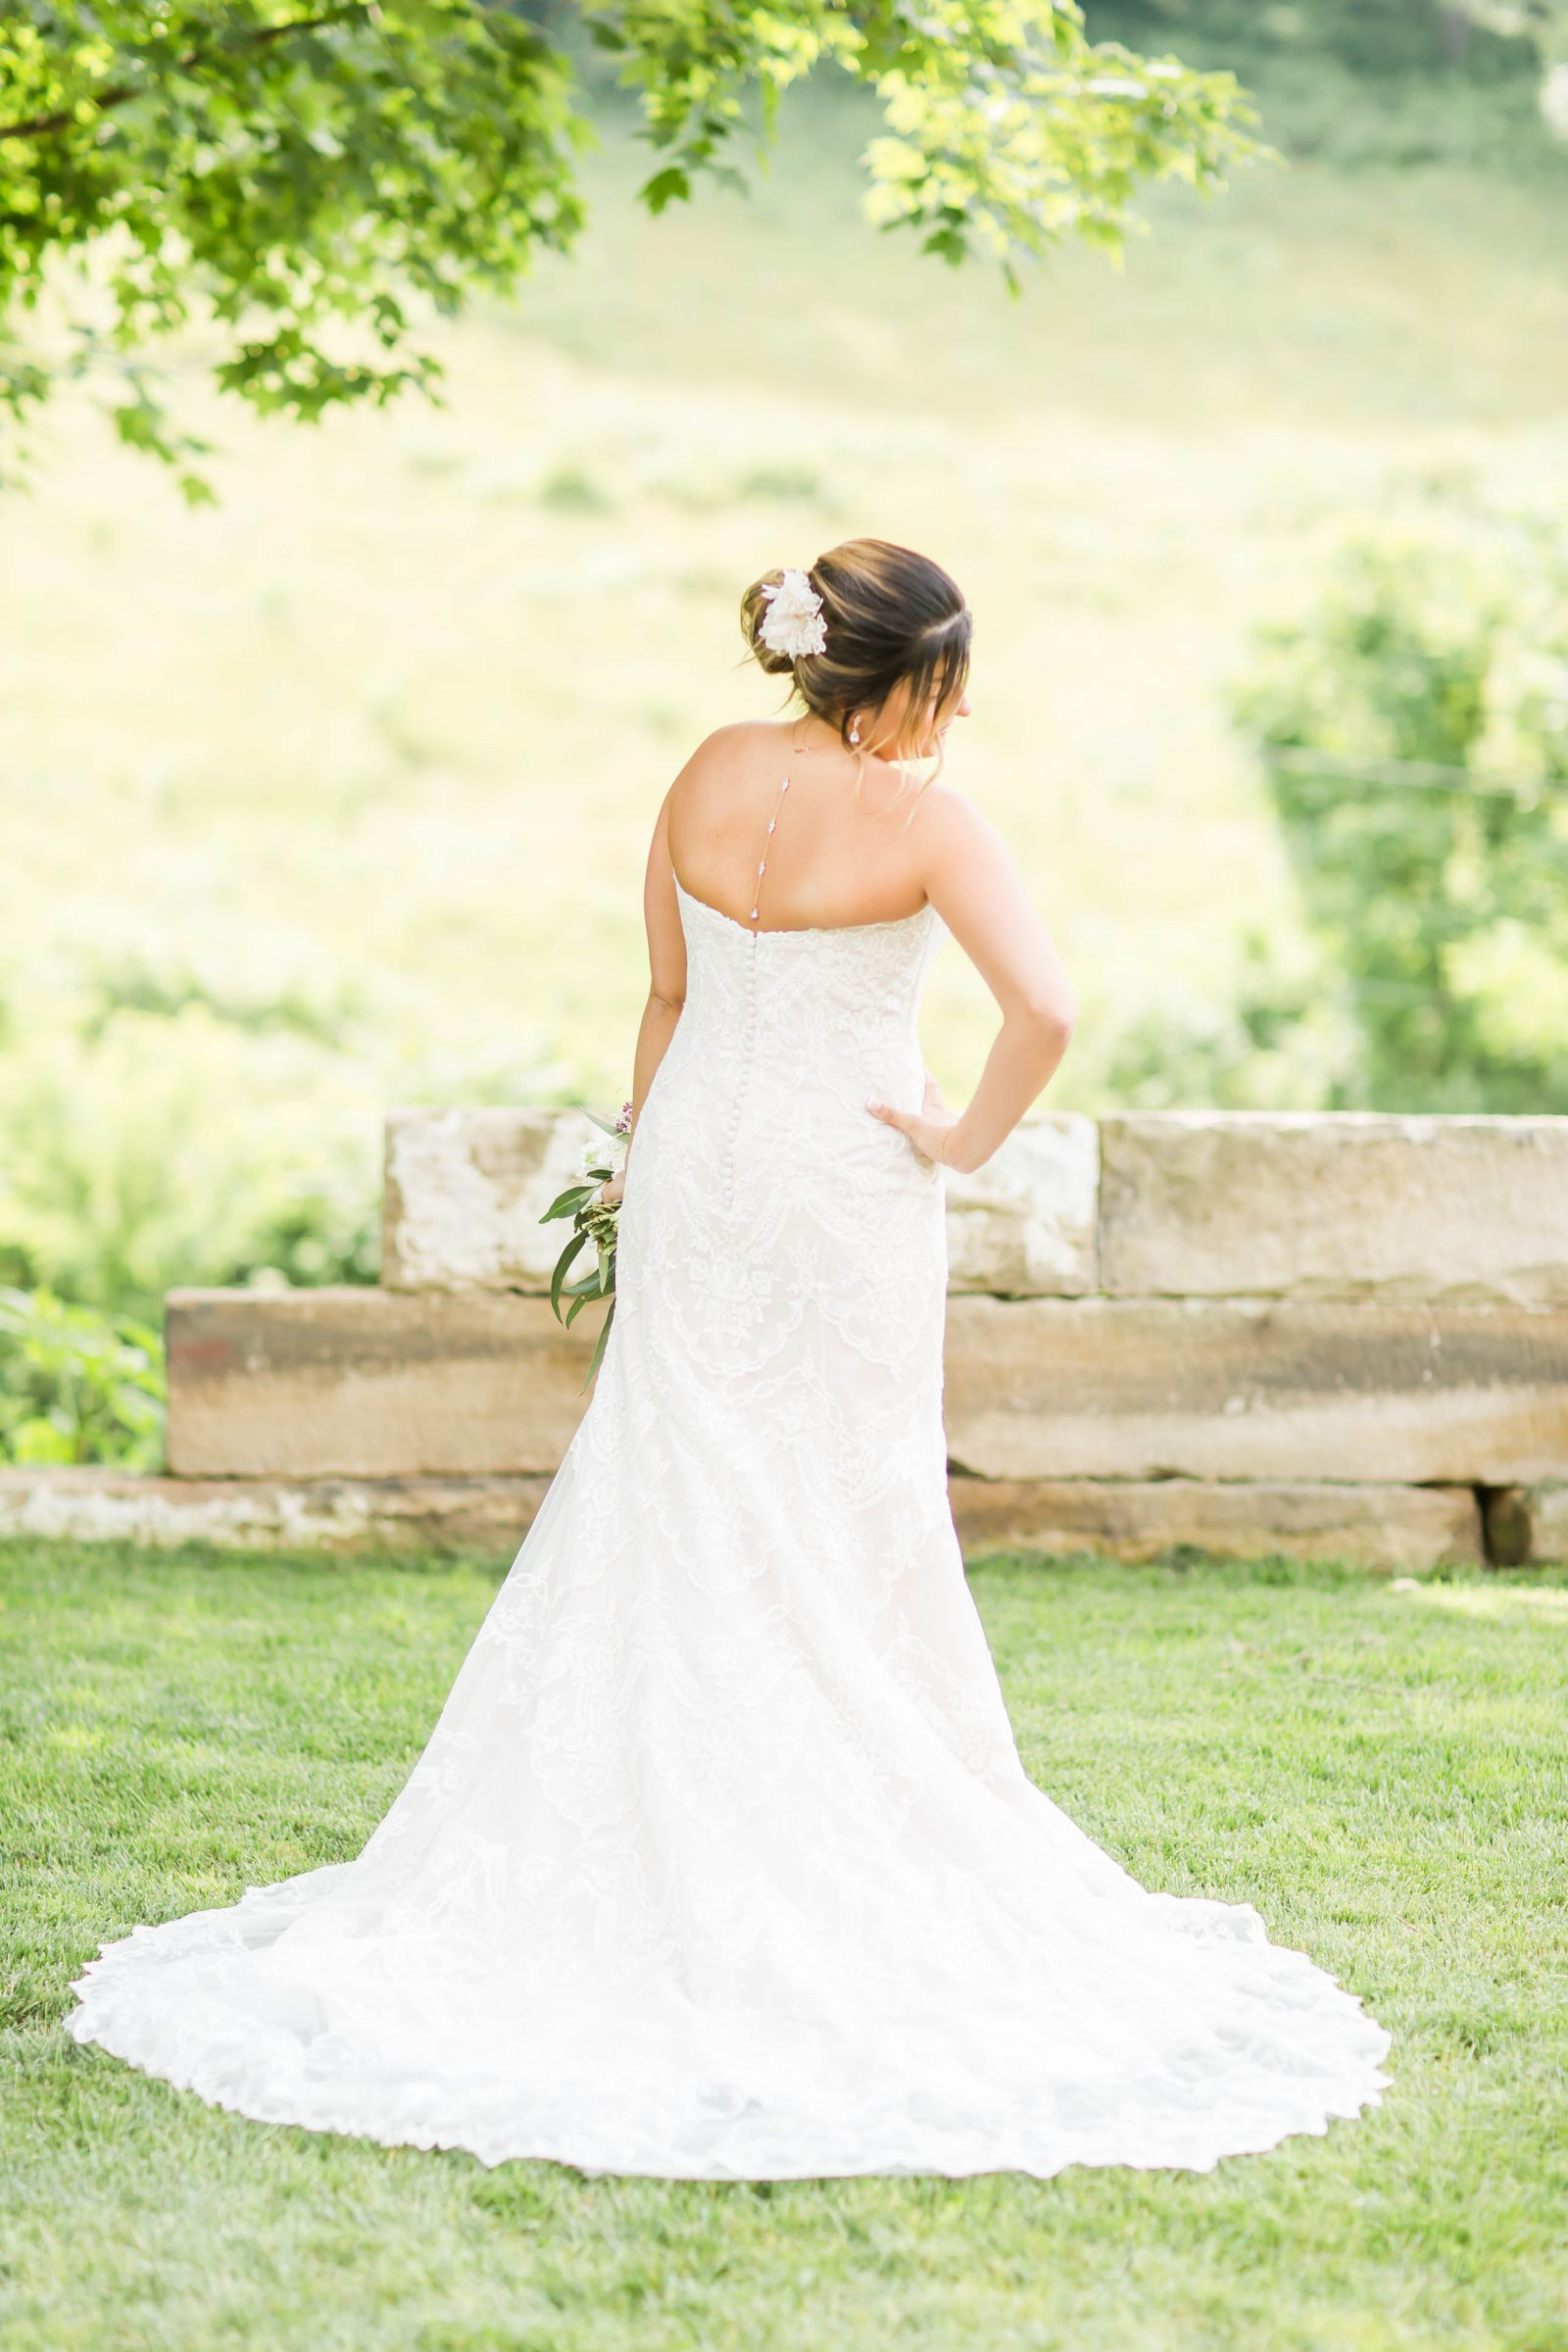 rivercrest-farm-summer-wedding-loren-jackson-photography-66